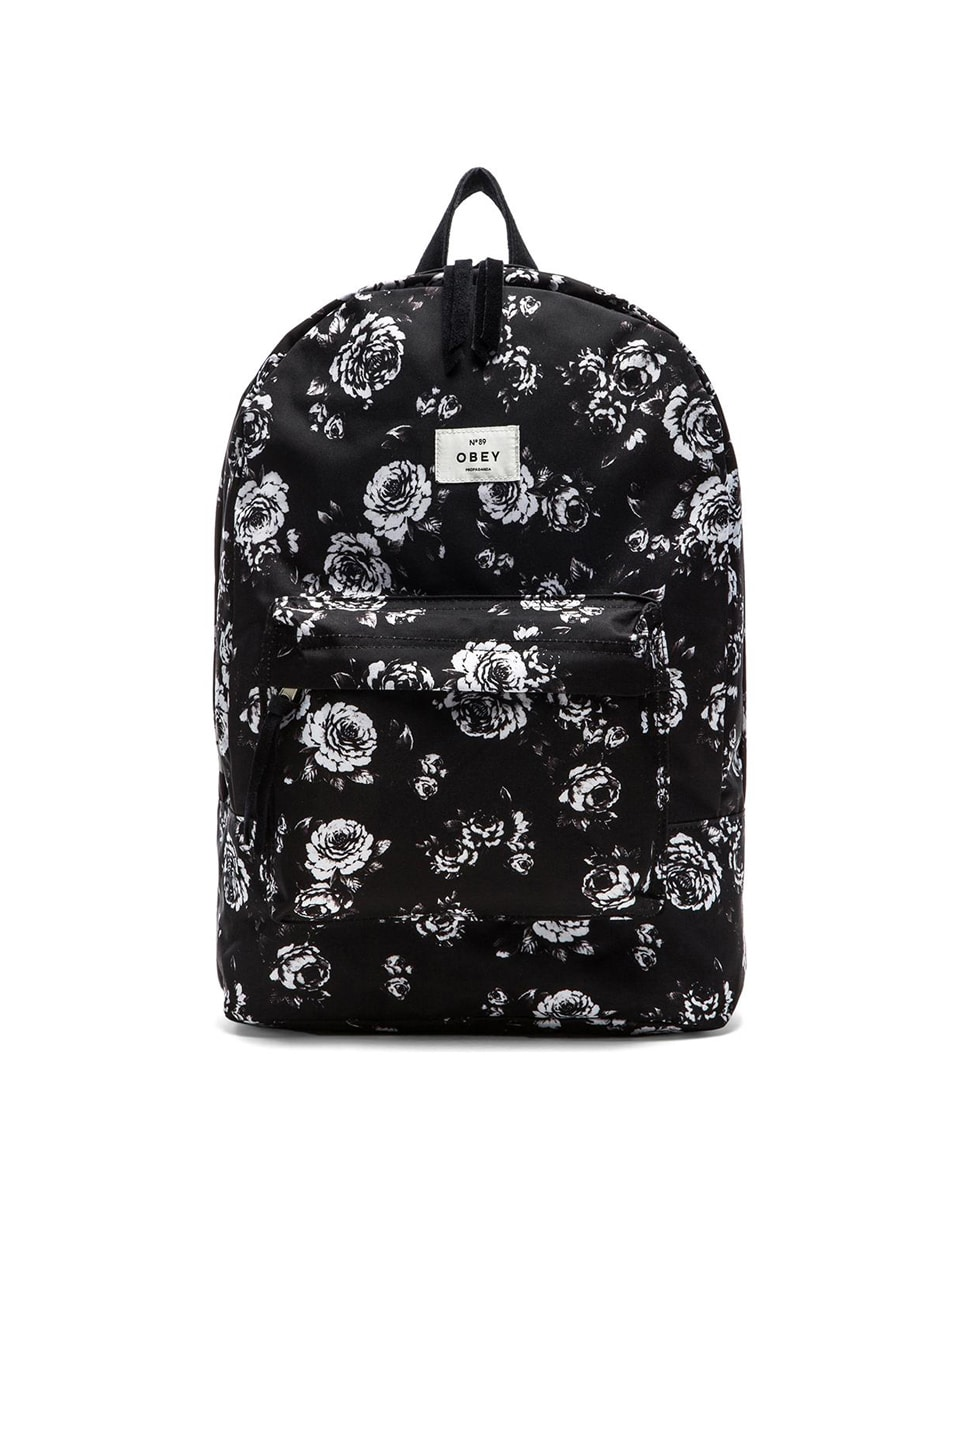 Obey Outsider Backpack in Black Multi